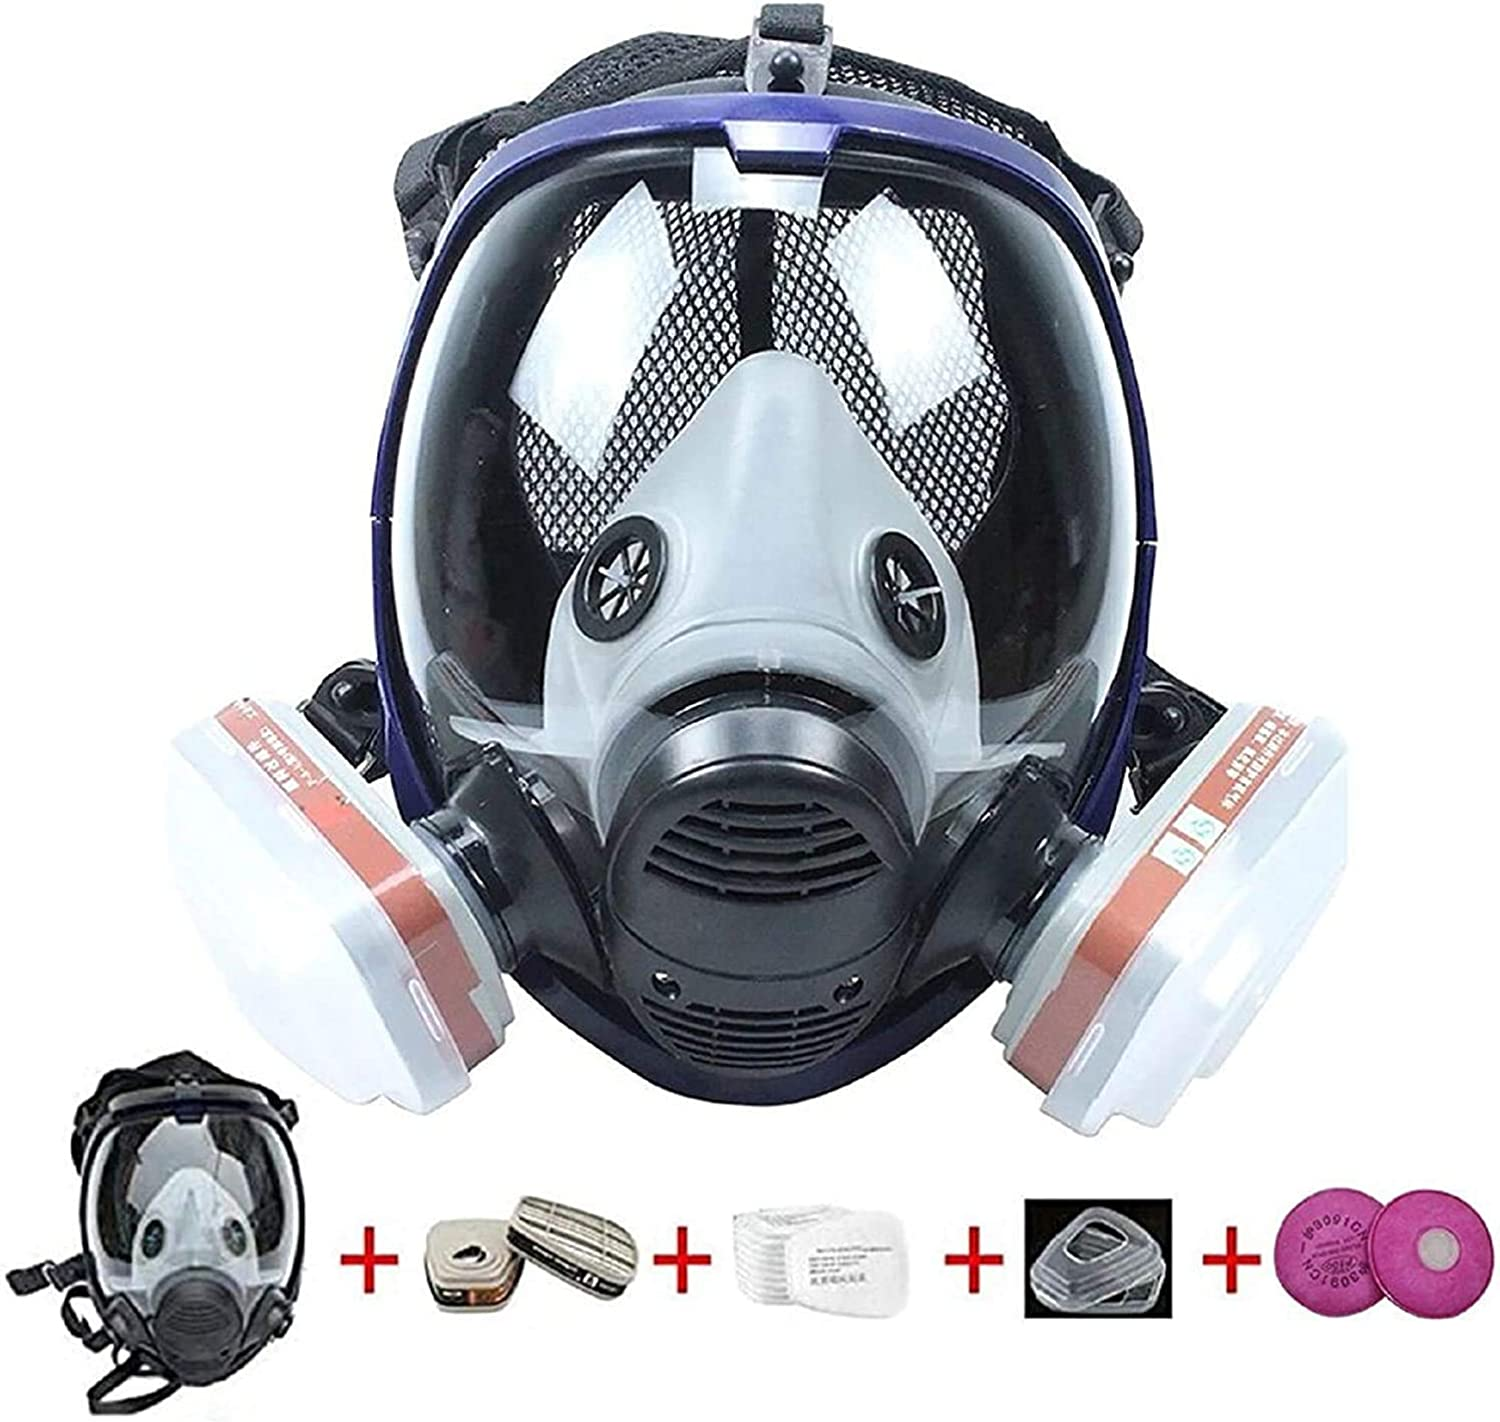 Generies FNWD 17 in 1 Full Face F 1 year warranty Reusable Protective Respirator Dealing full price reduction